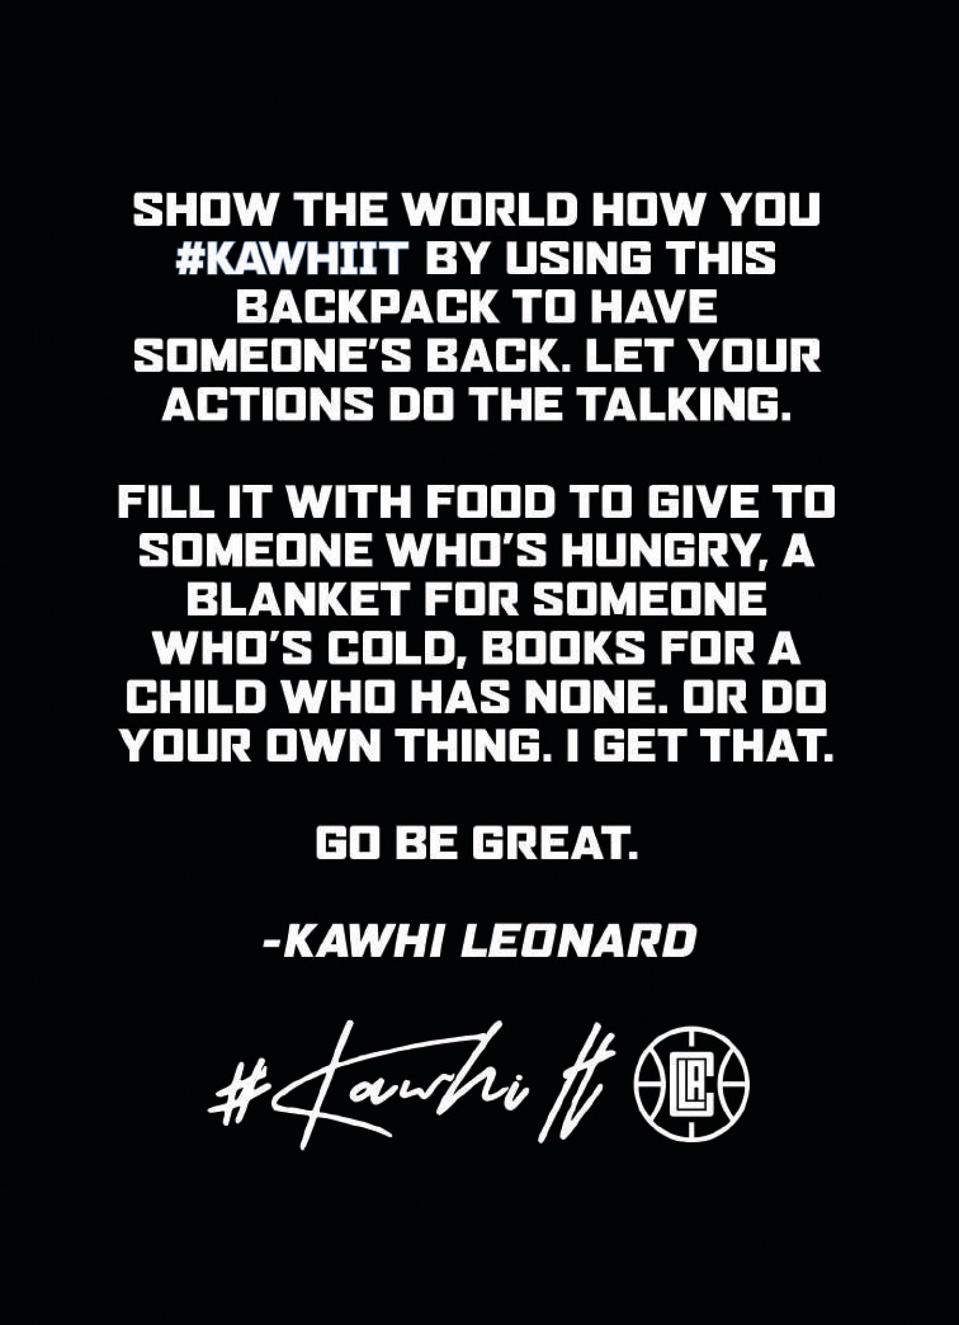 The back of the #Kawhiit note card